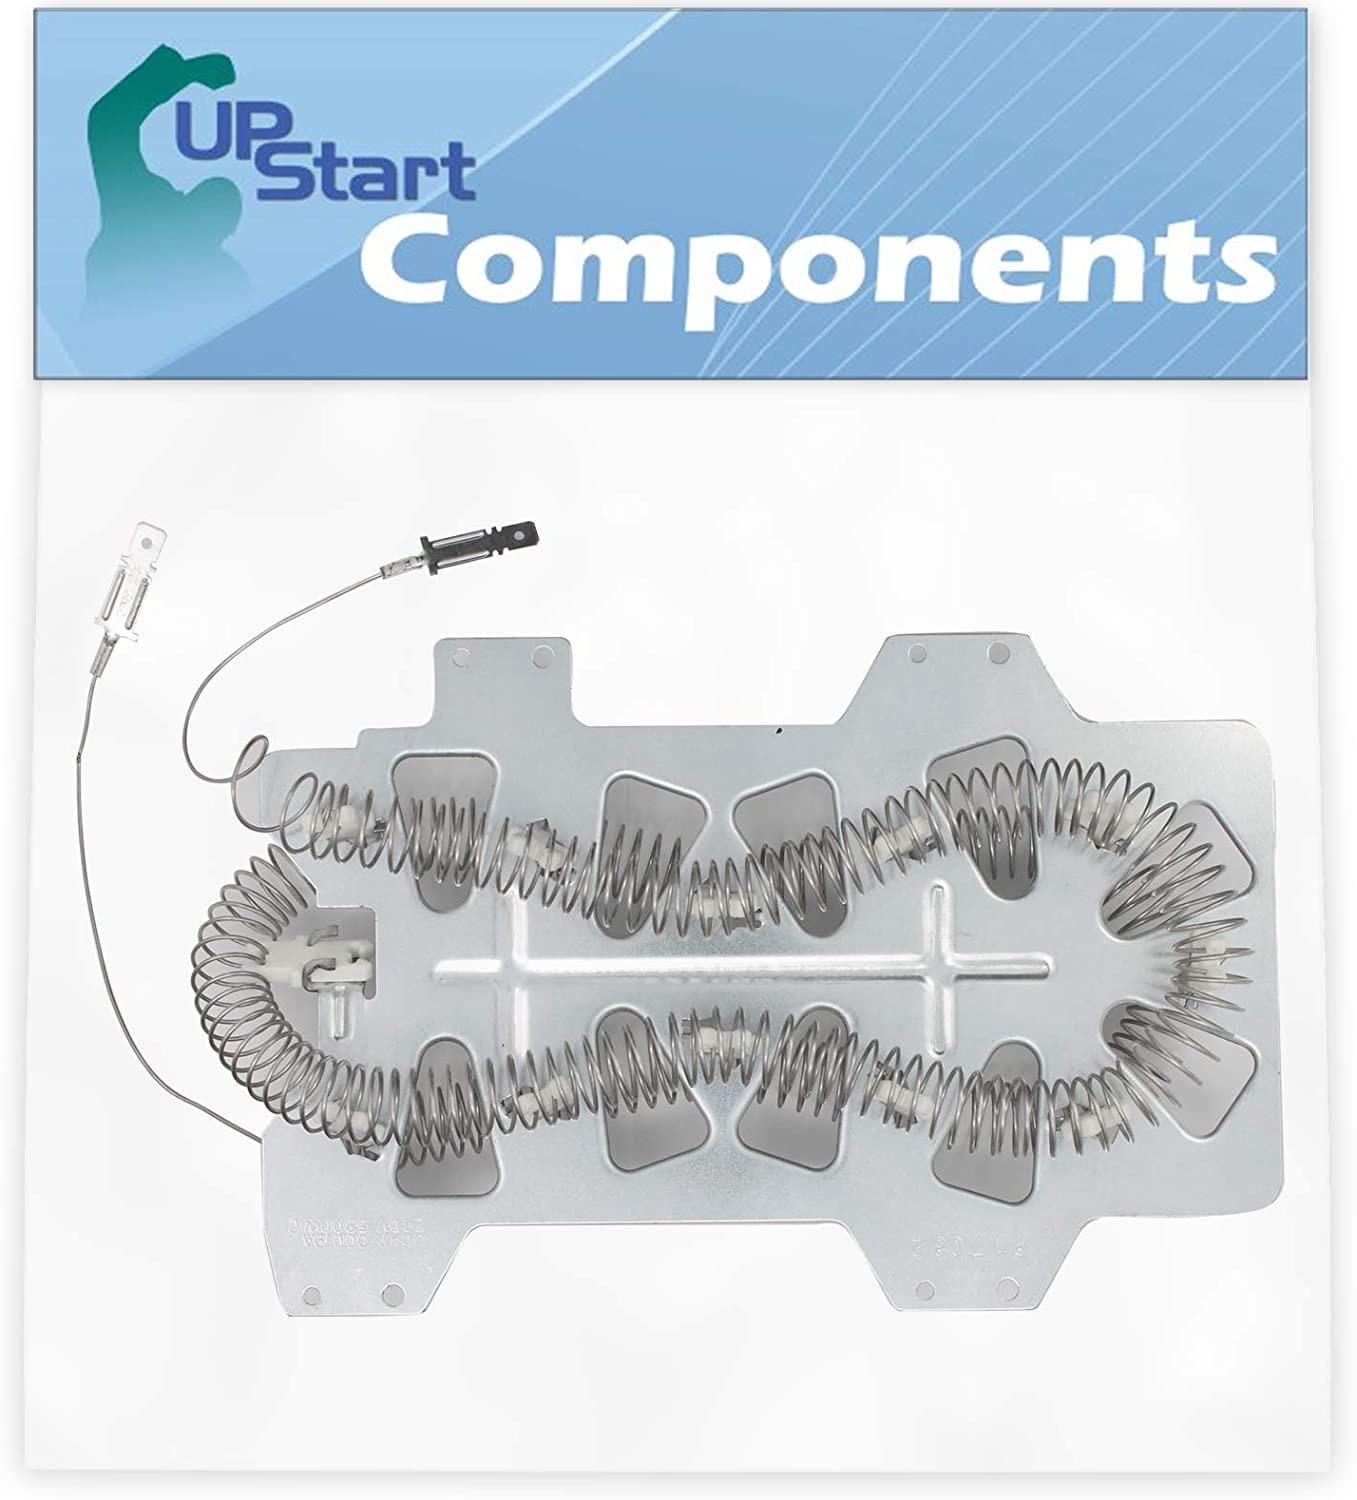 DC47-00019A Dryer Heating Element Replacement for Samsung DV361EWBEWR/A3-0001 Dryer - Compatible with DC47-00019A Heater Element - UpStart Components Brand